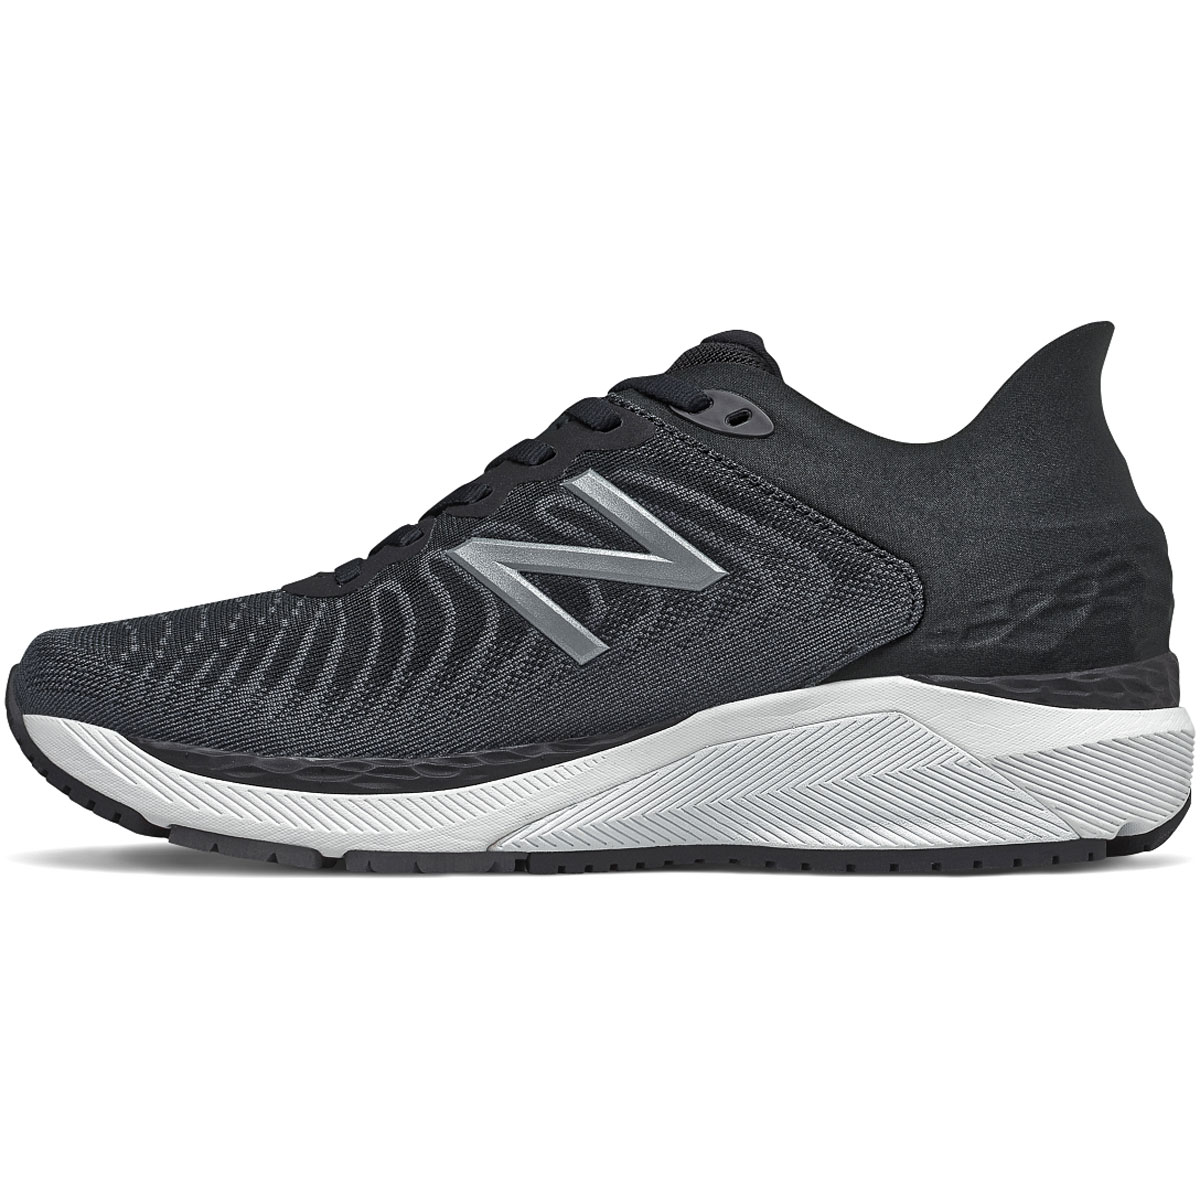 Women's New Balance 860V11 Running Shoe - Color: Black/White/Phantom - Size: 6.5 - Width: Regular, Black/White/Phantom, large, image 2